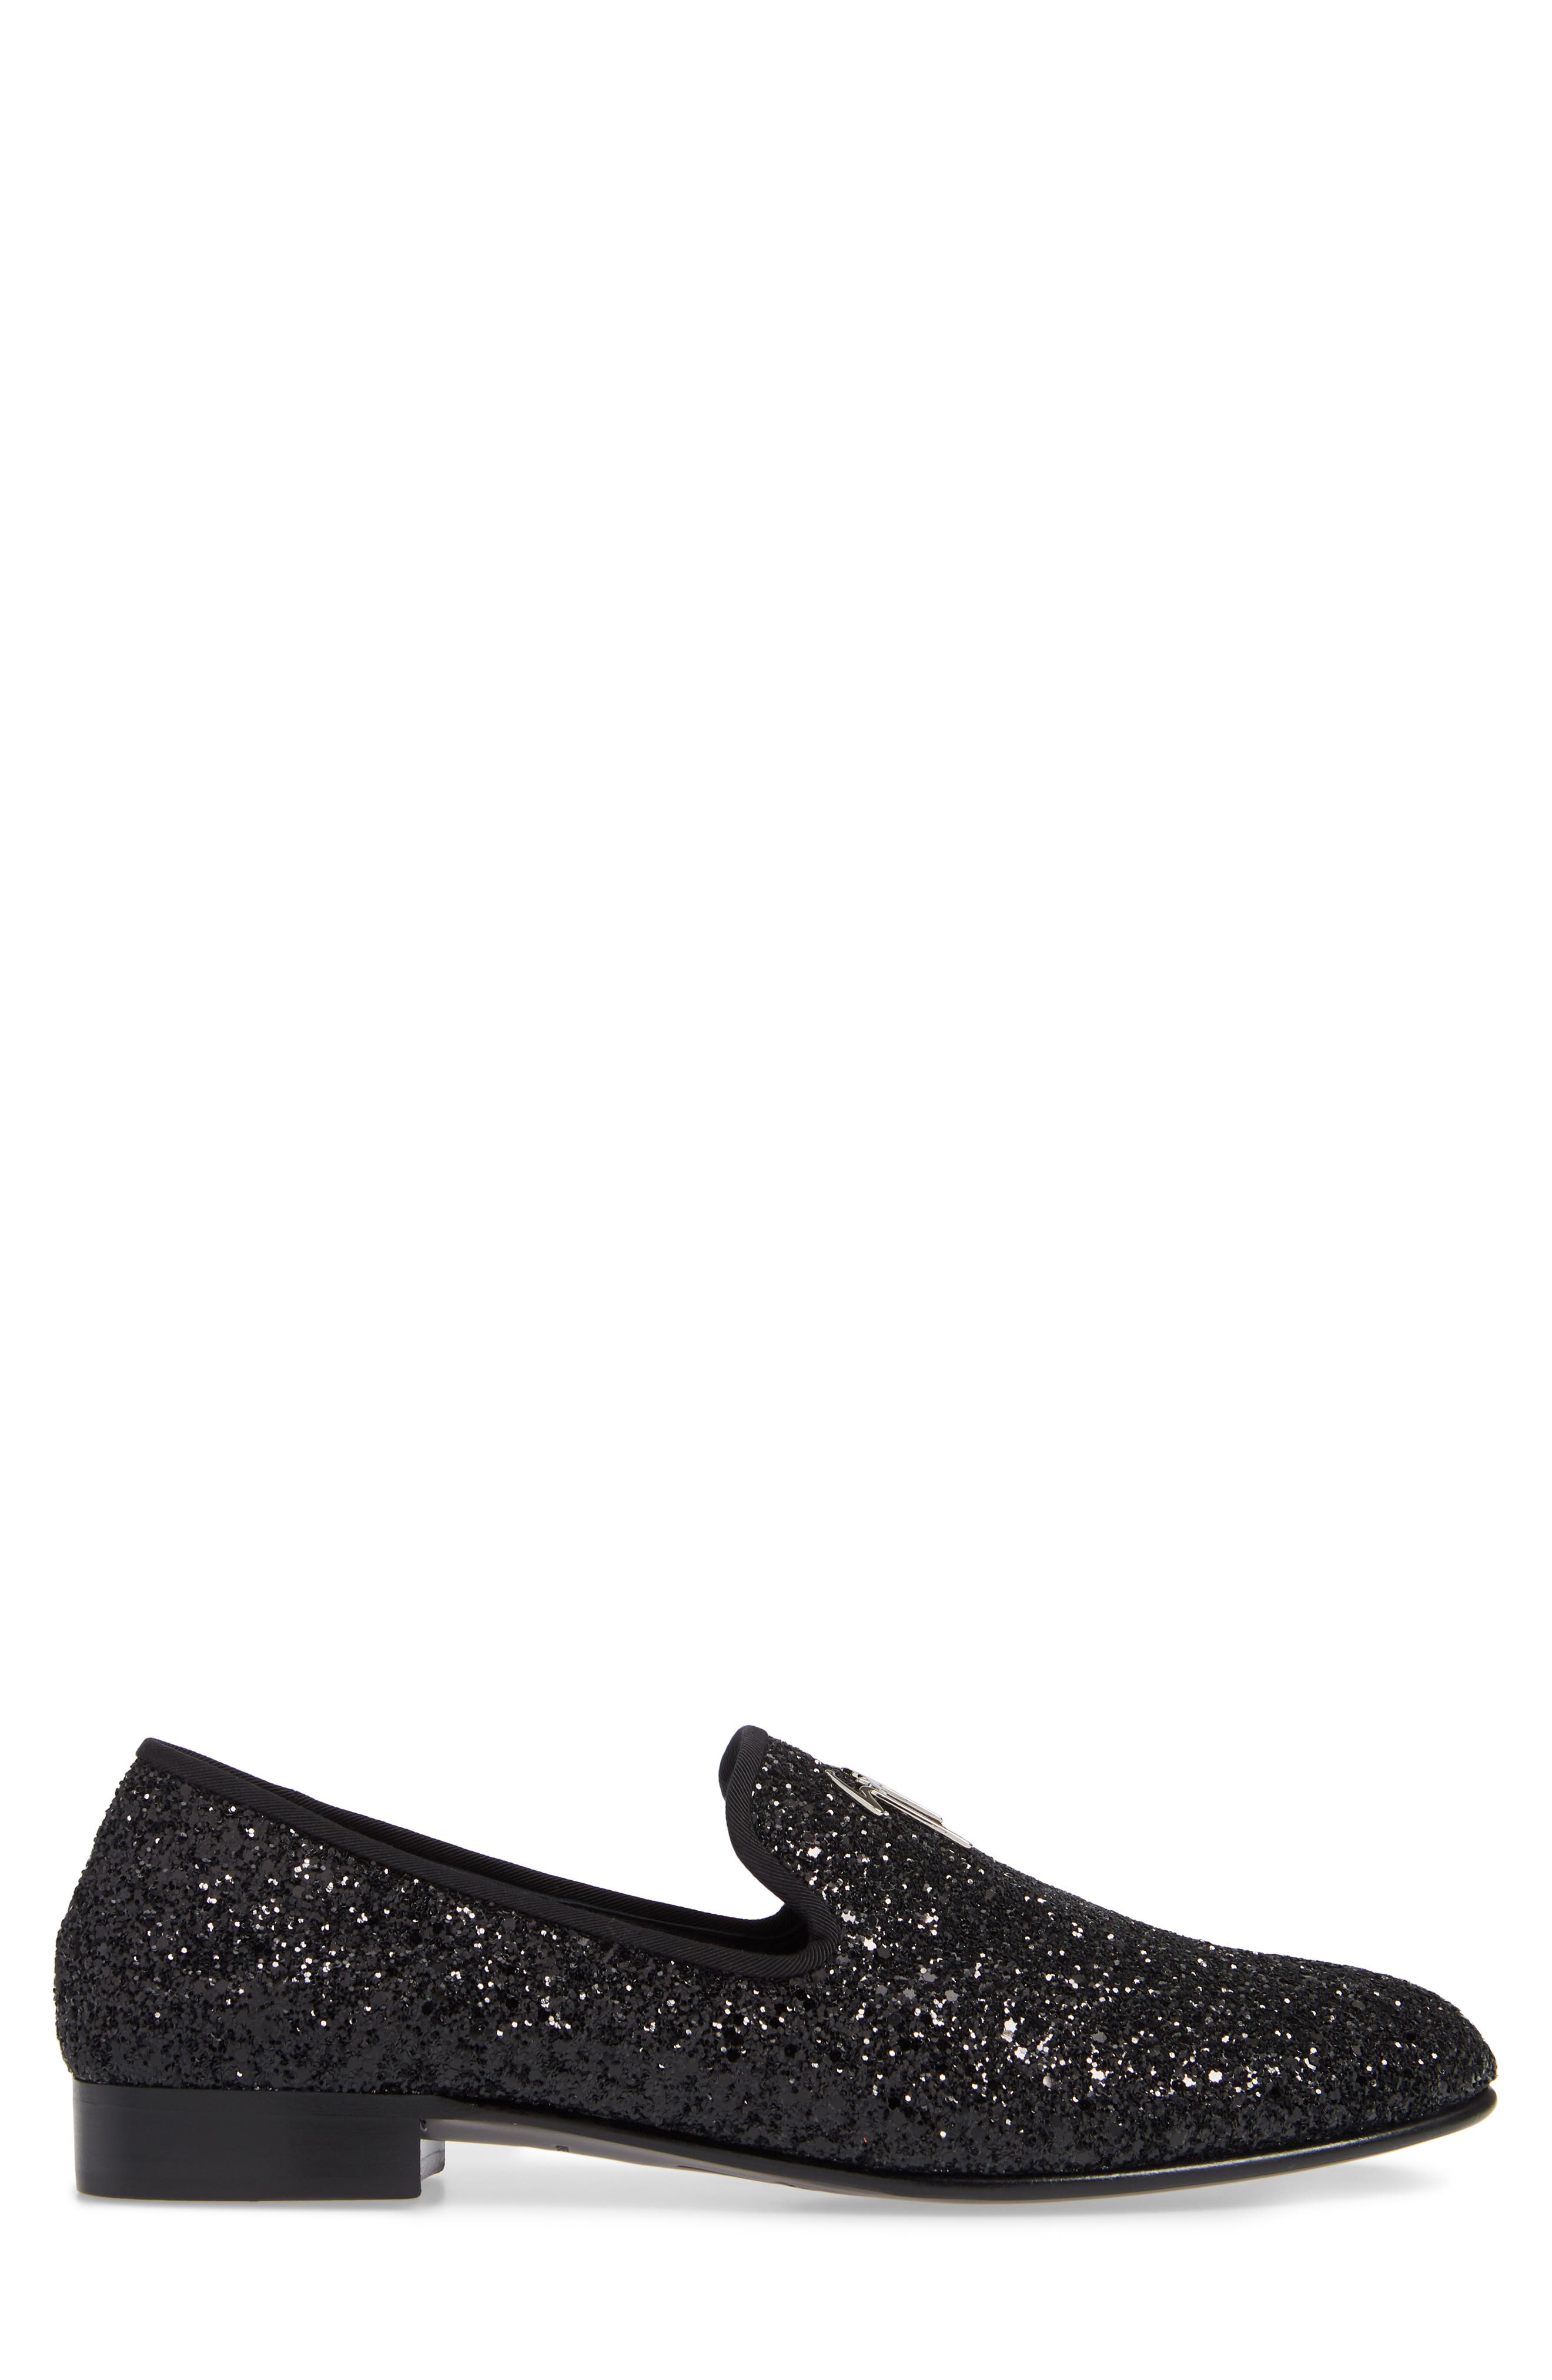 GIUSEPPE ZANOTTI, Glitter Encrusted Smoking Slipper, Alternate thumbnail 3, color, BLACK